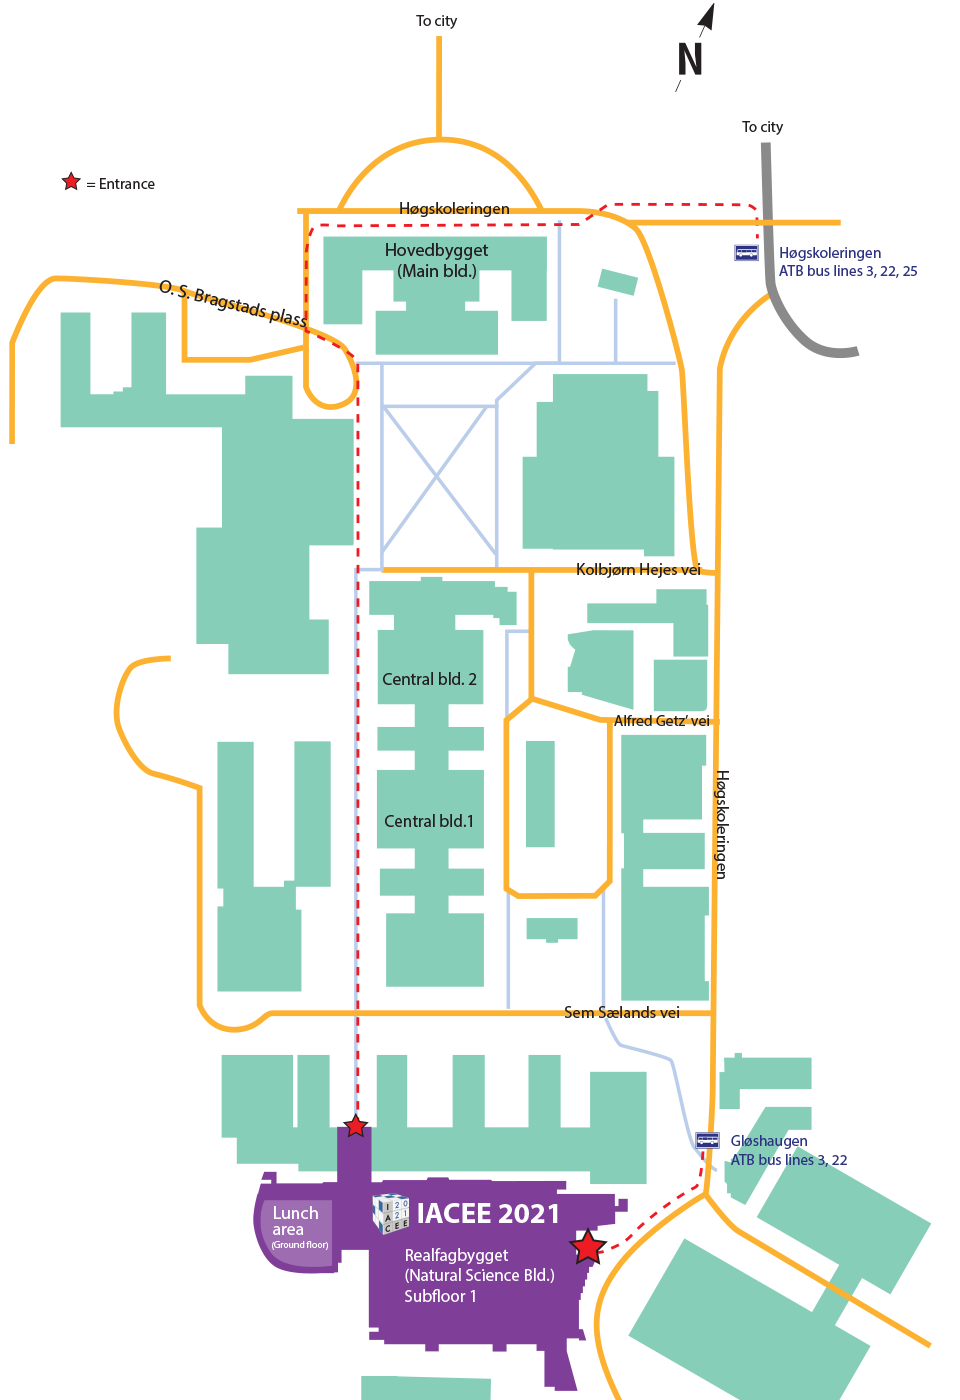 Map showing NTNU campus with IACEE 2021 venue realfagbygget at the south end of campus